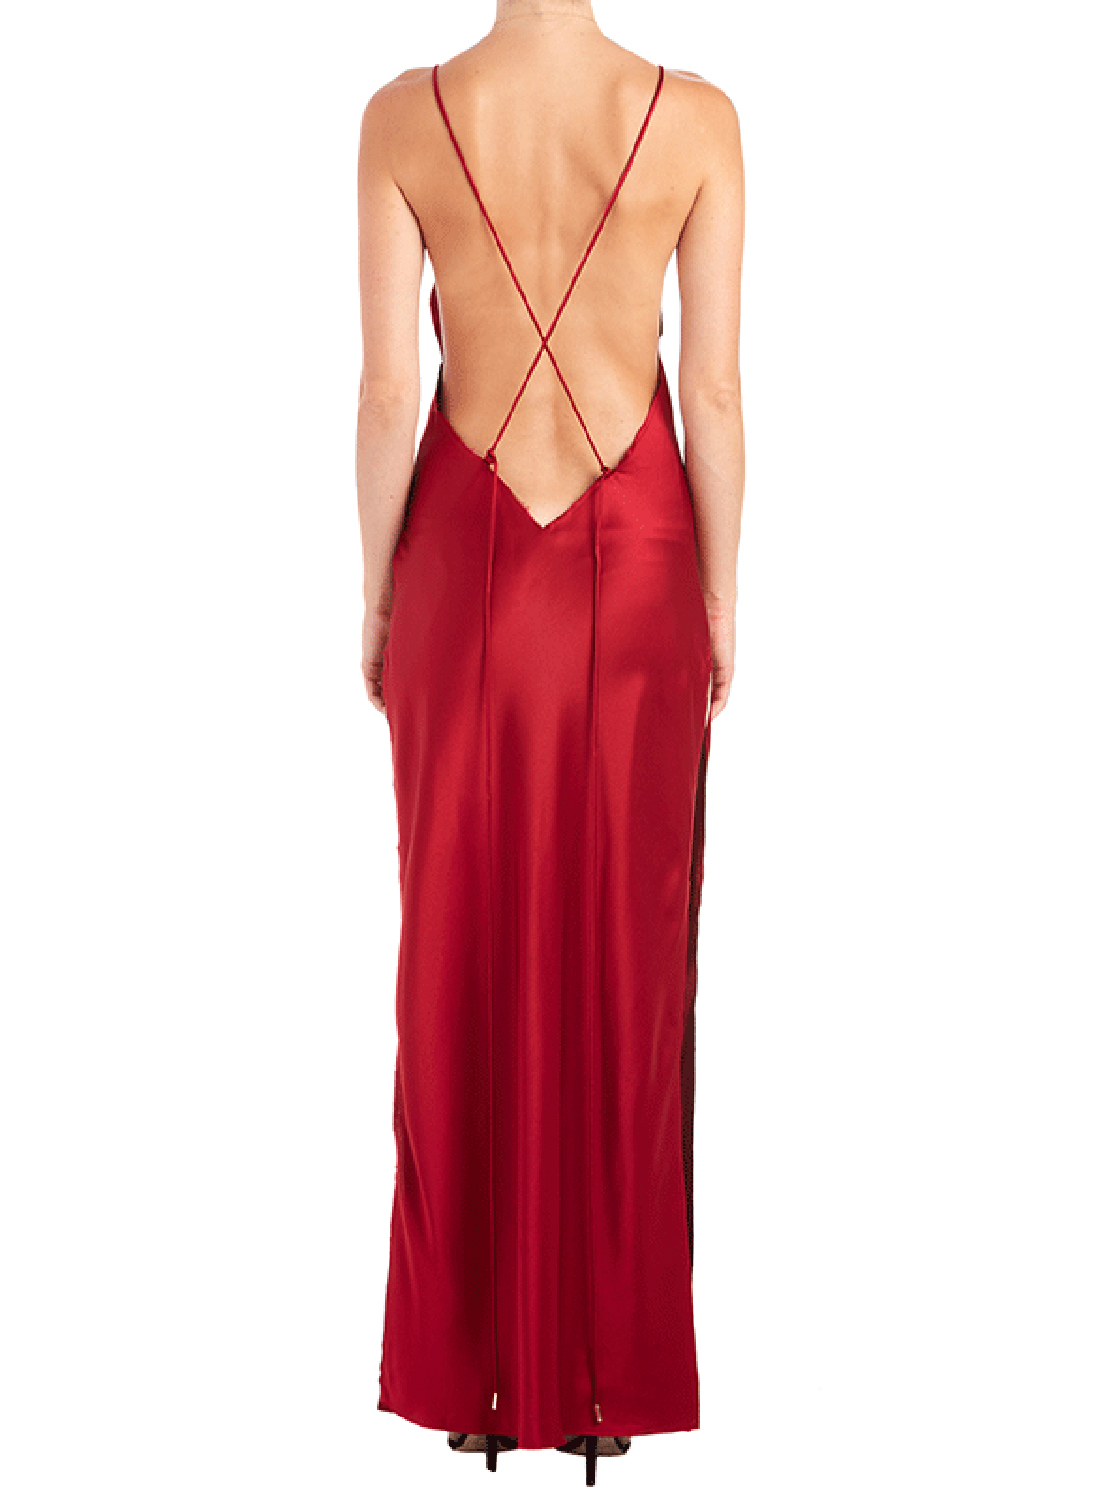 Deep V Neck Backless High Slit Dress Victoriaswing